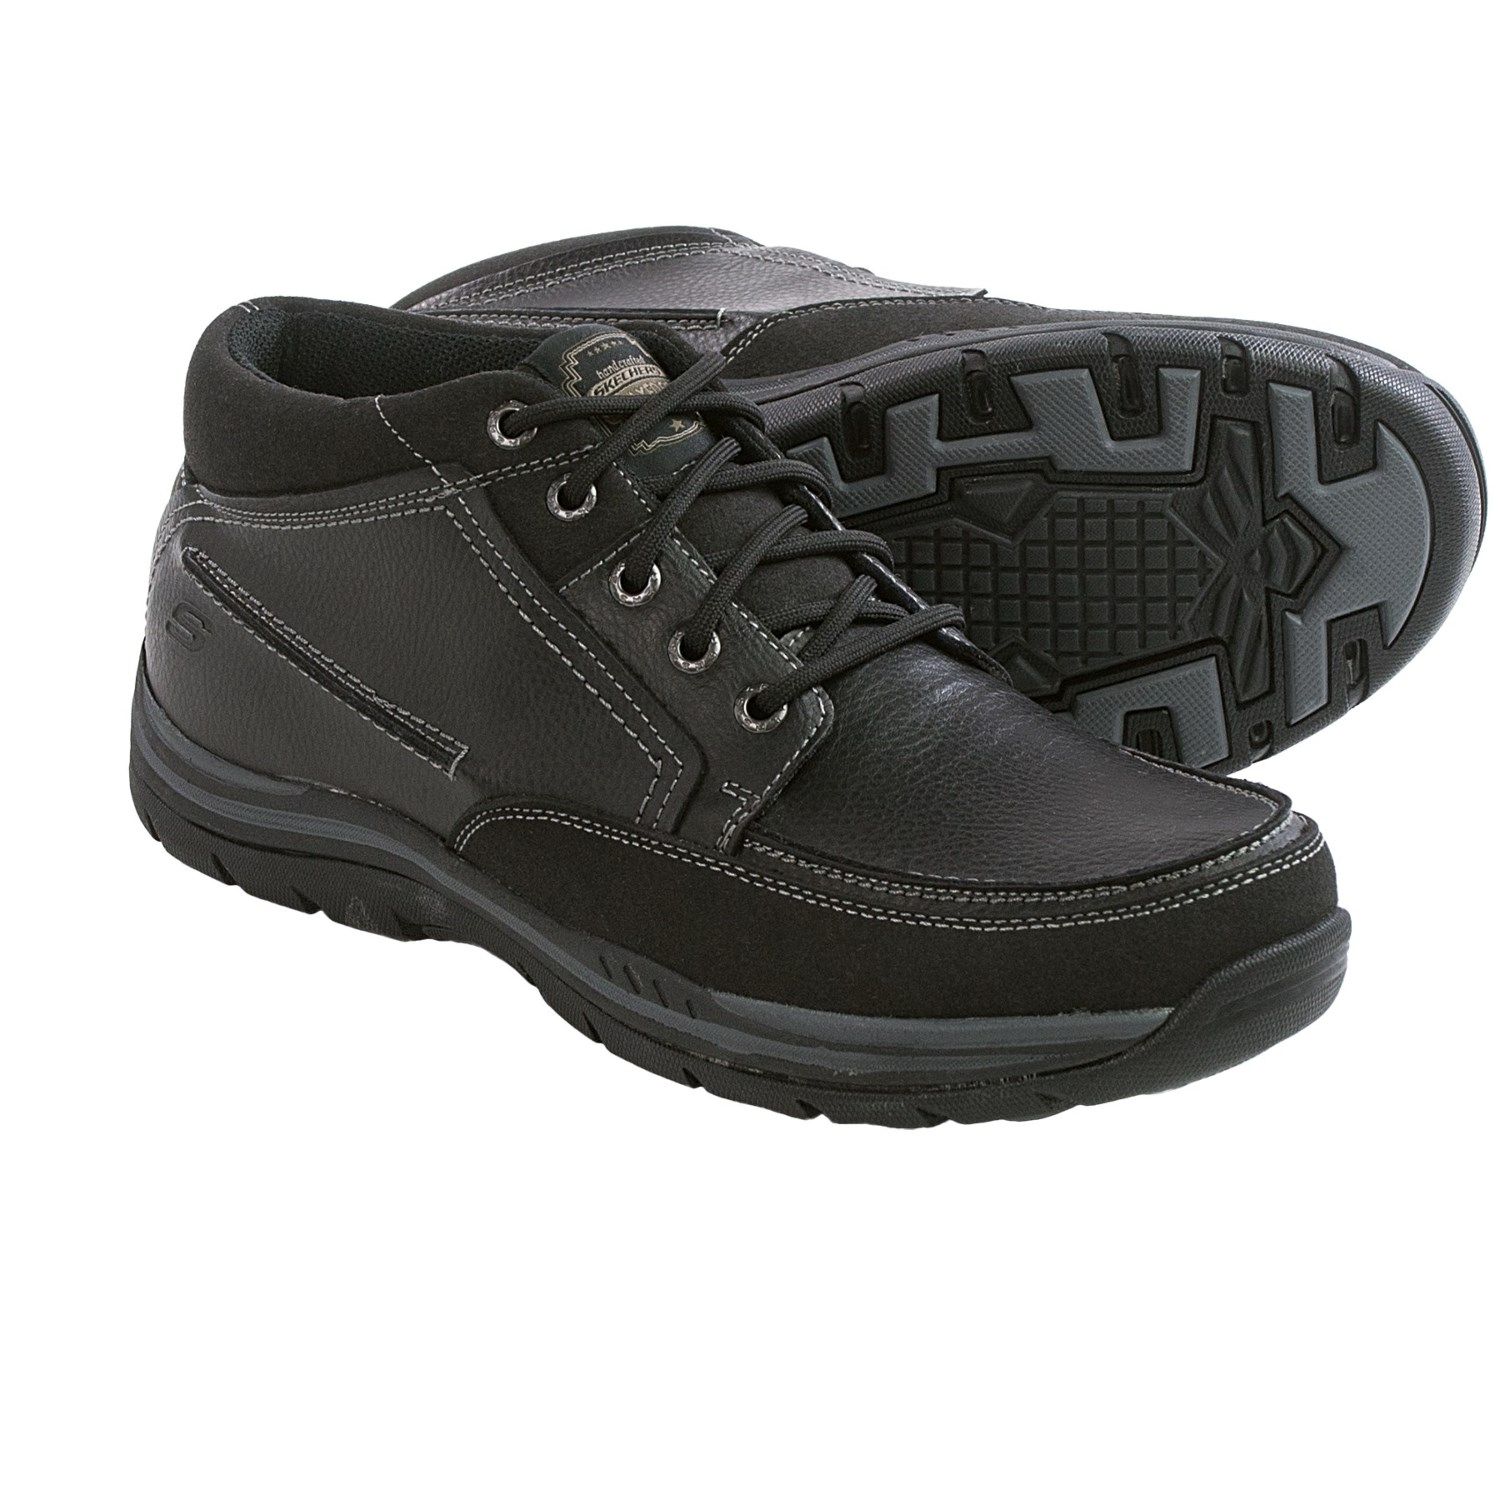 Skechers Relaxed Fit Expected Cason Chukka Boots (For Men) - Save 49%